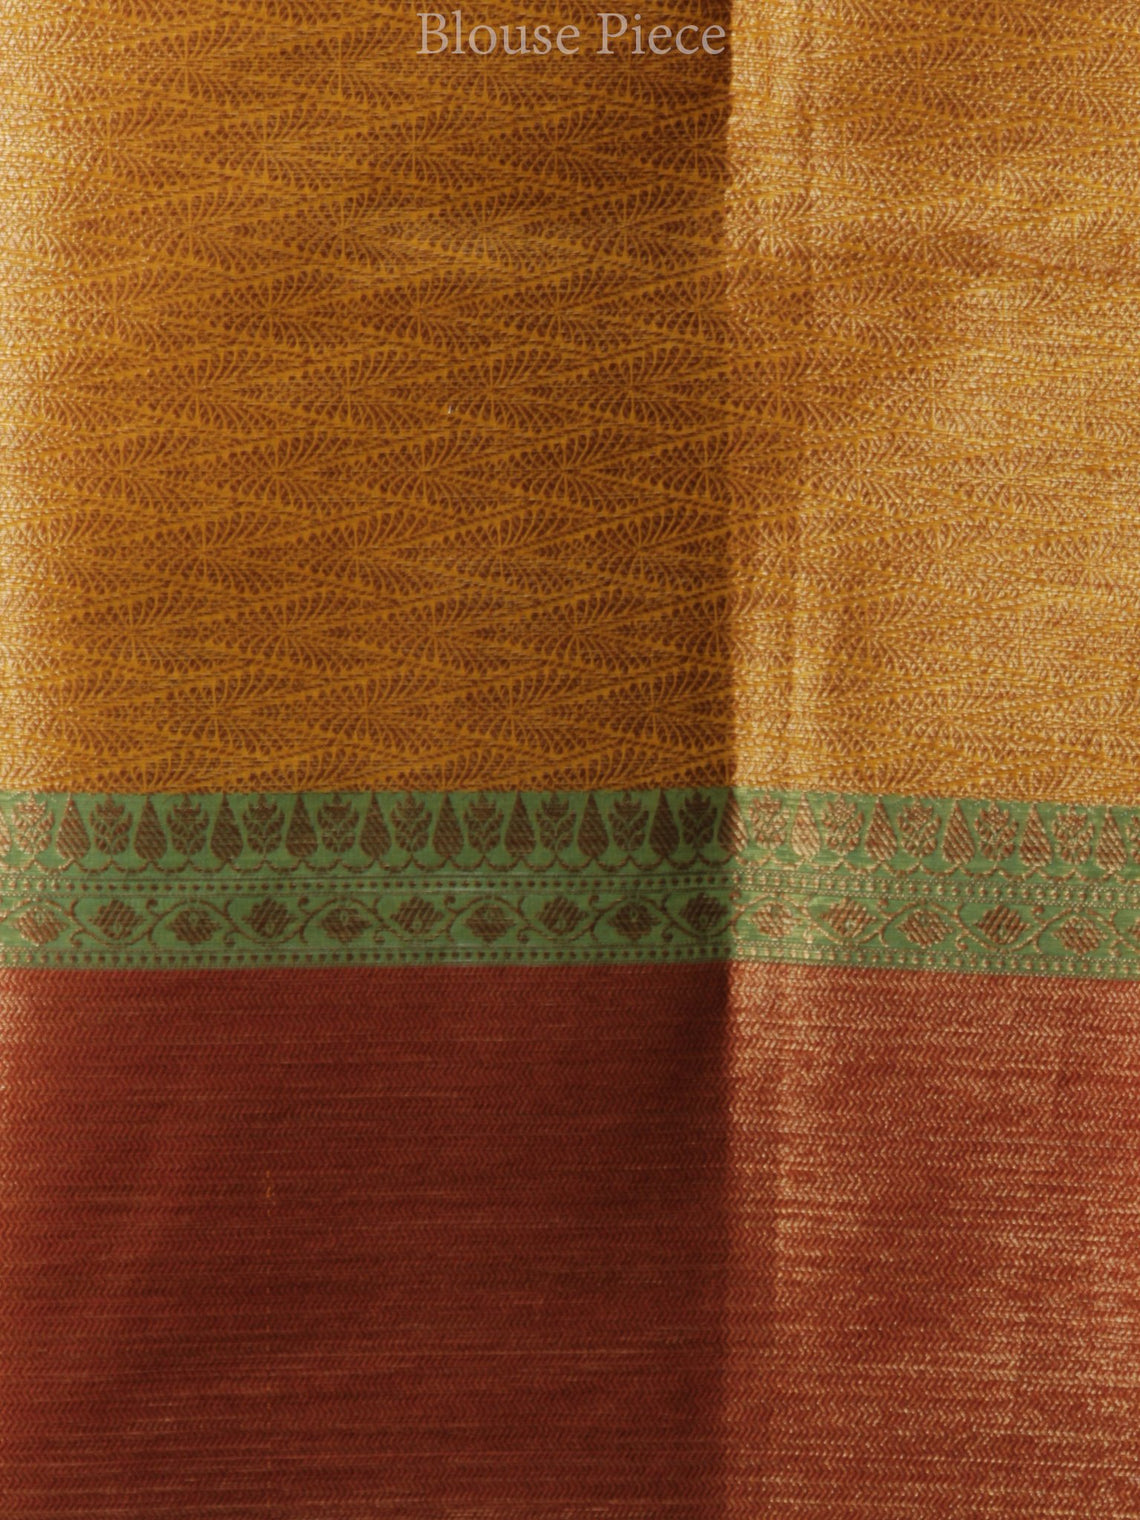 Banarasee Tissue Saree With Zari Work - Yellow Rust Copper Green - S031704313